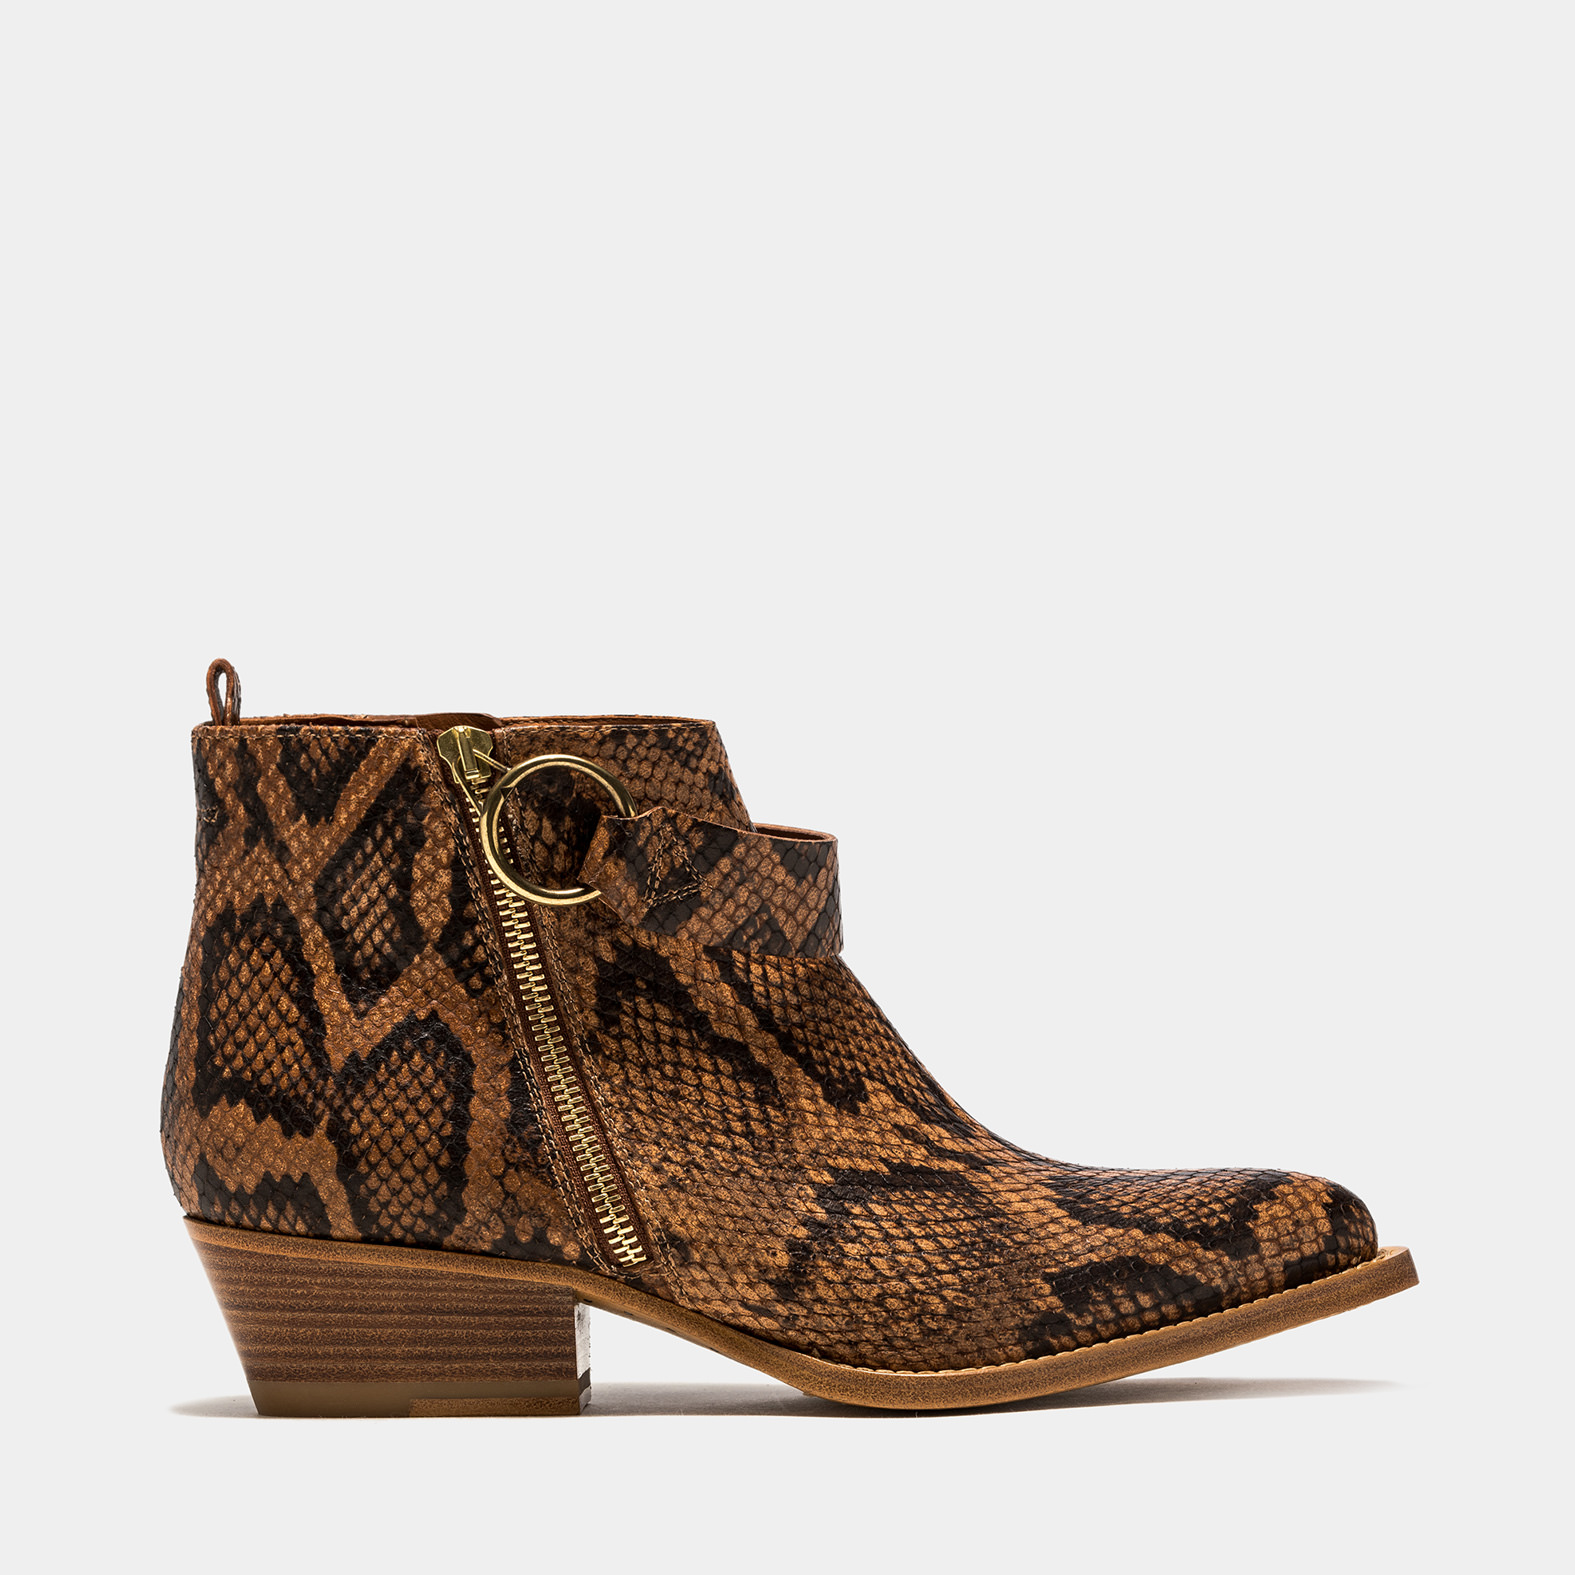 BUTTERO: TRES LOW-TOP DURANGO BOOTS IN BRANDY COLOR PYTHON PRINT LEATHER